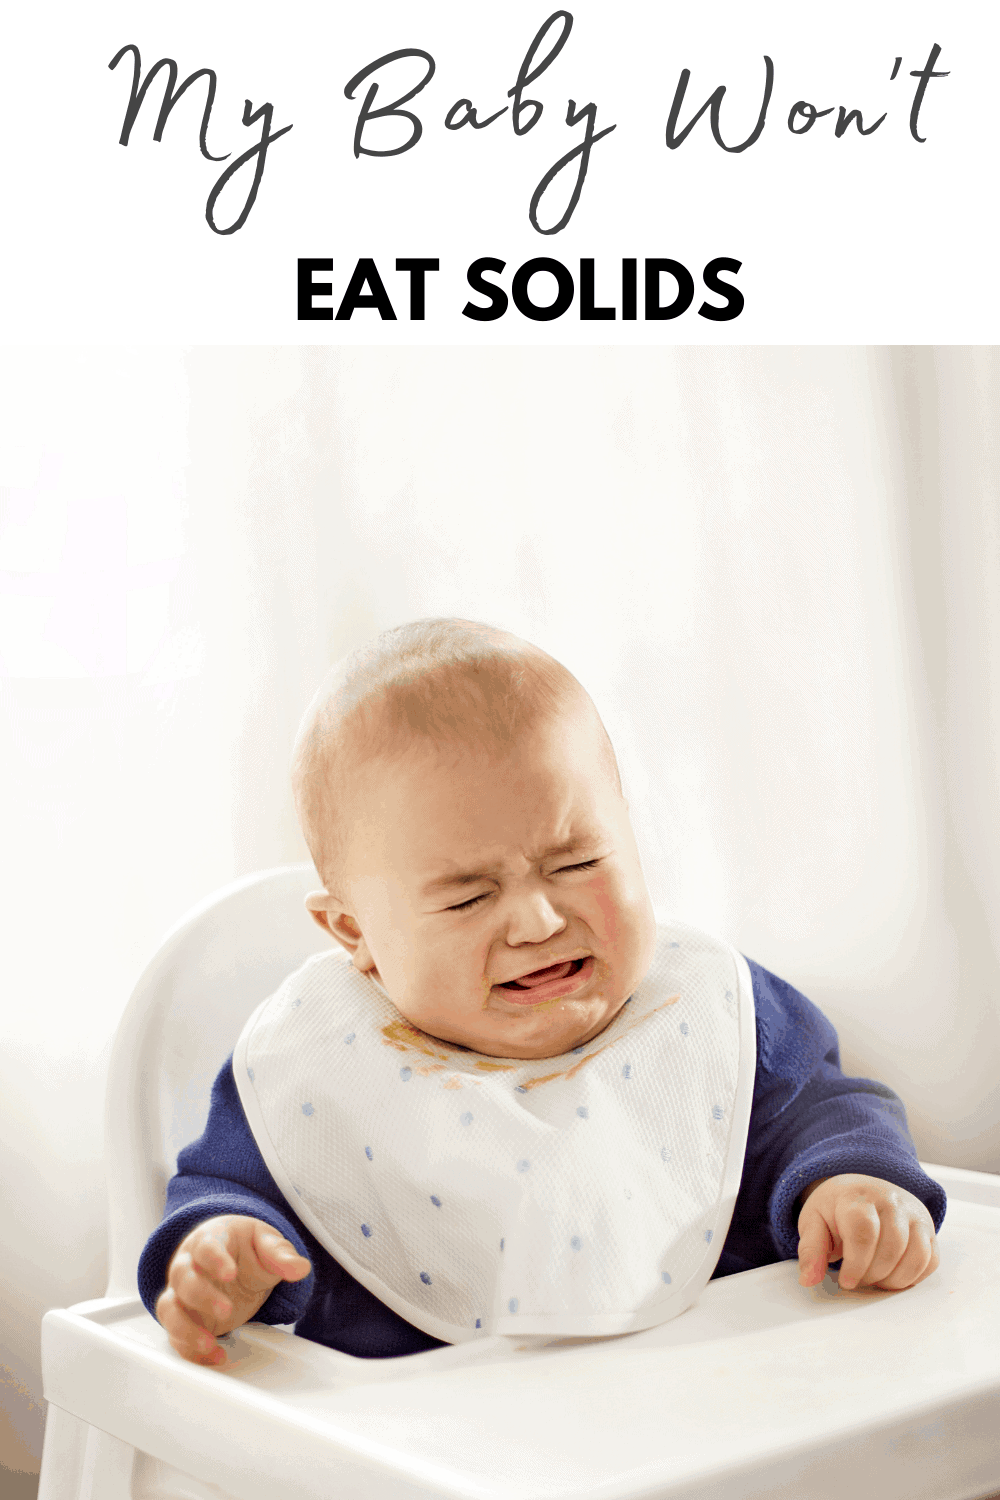 image of baby in high chair crying